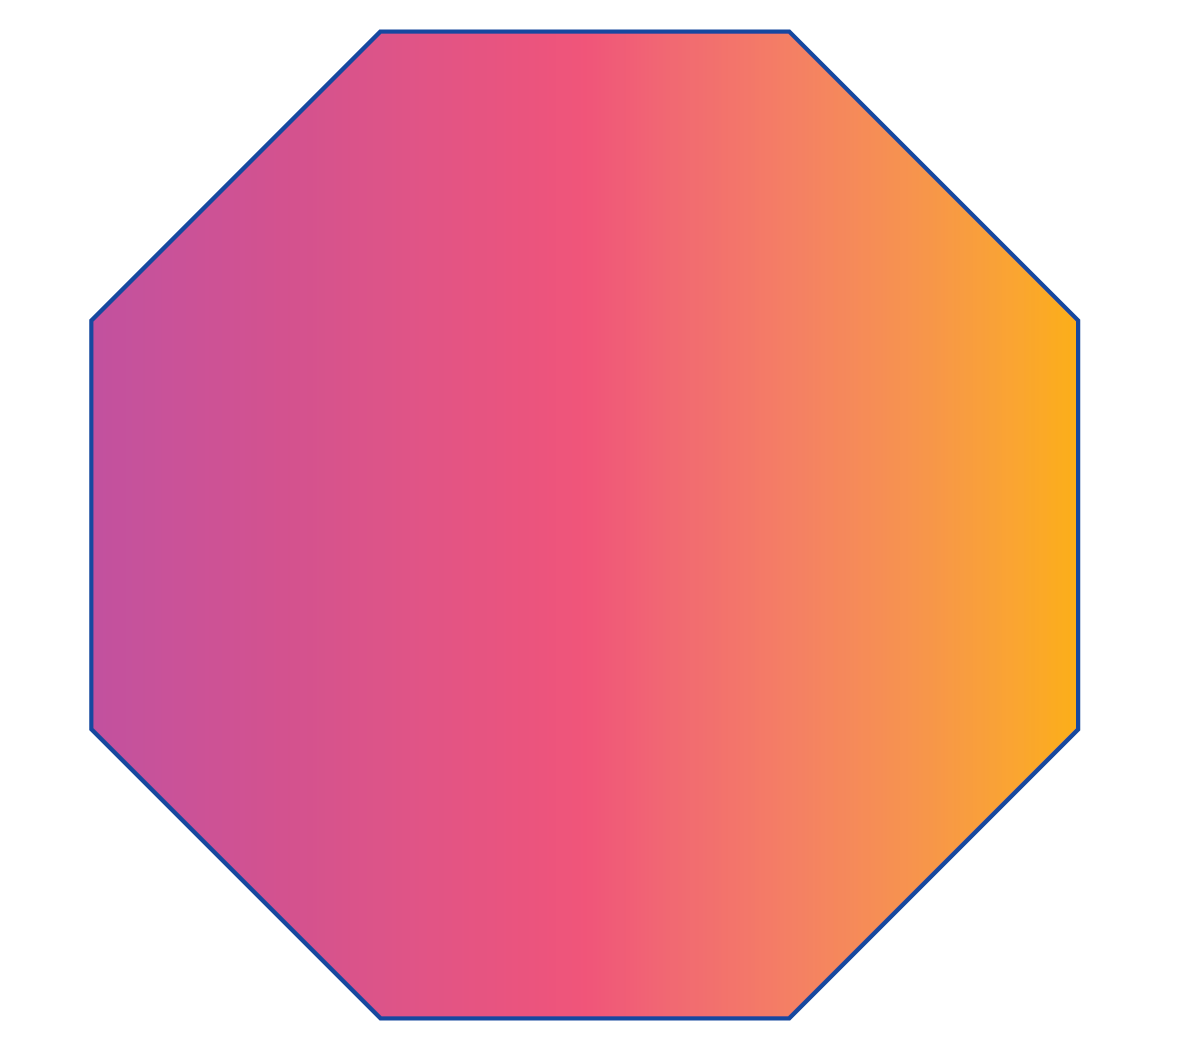 An octagon is a 2D shape